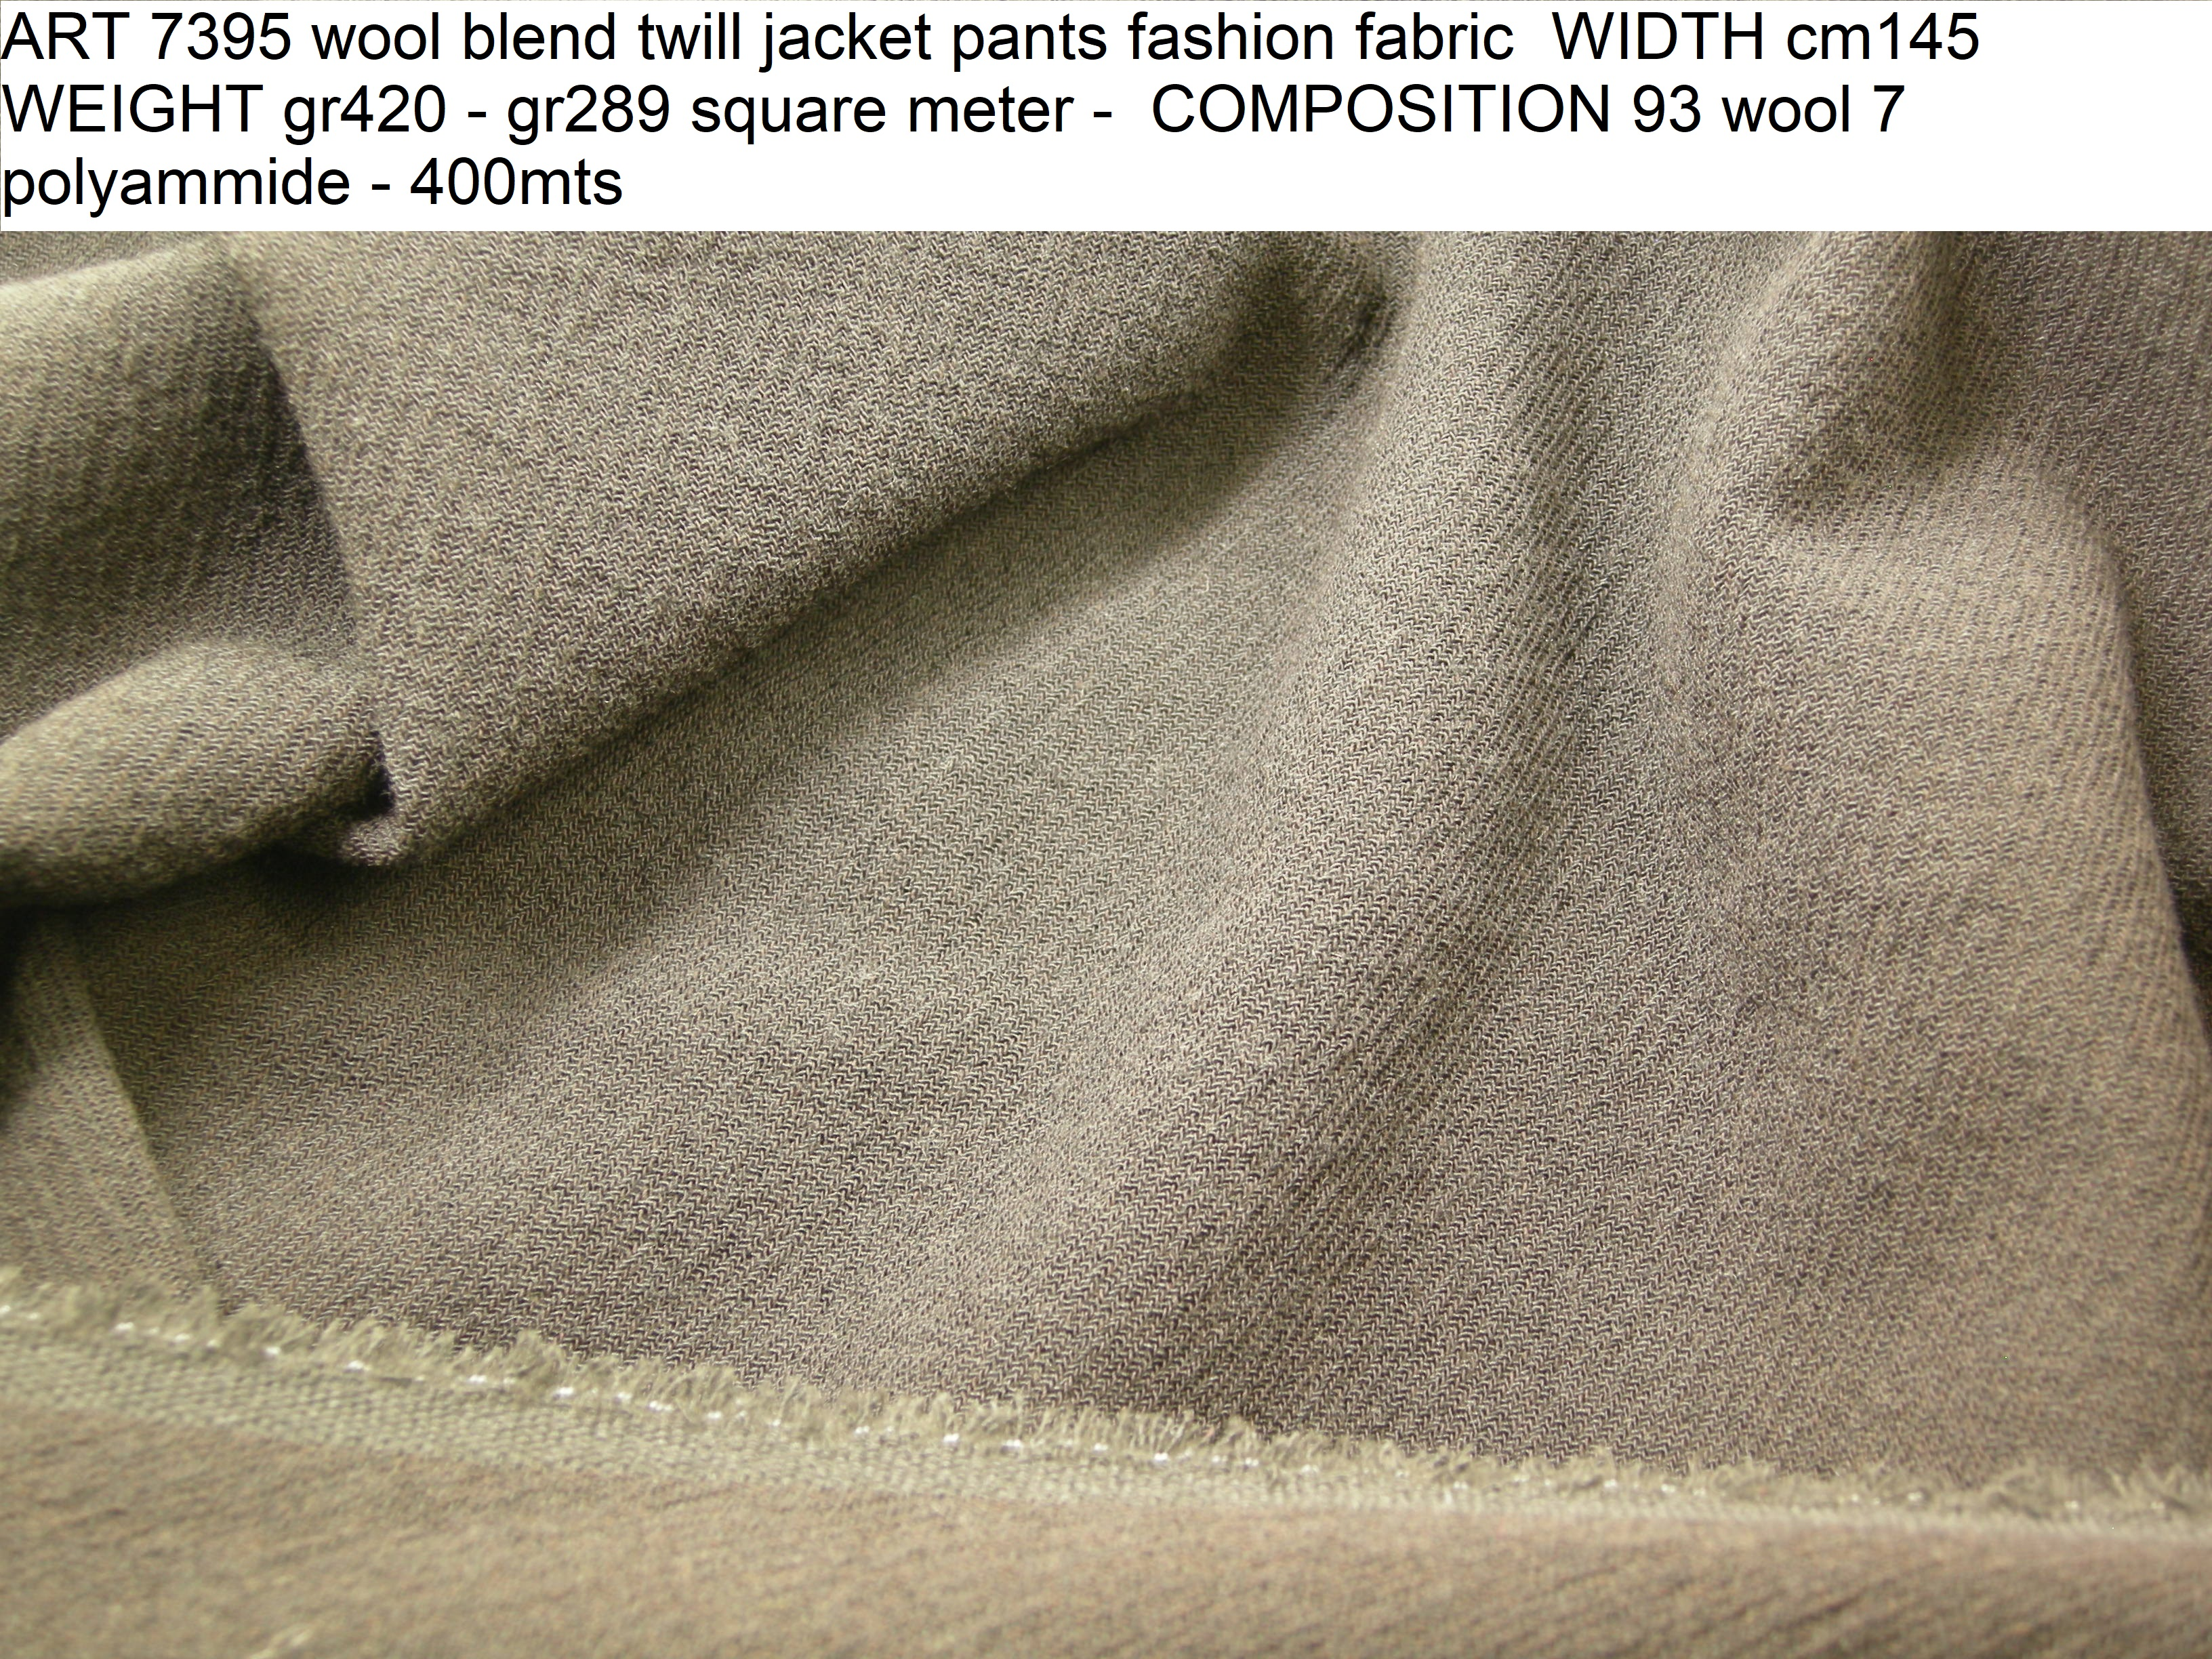 ART 7395 wool blend twill jacket pants fashion fabric WIDTH cm145 WEIGHT gr420 - gr289 square meter - COMPOSITION 93 wool 7 polyammide - 400mts